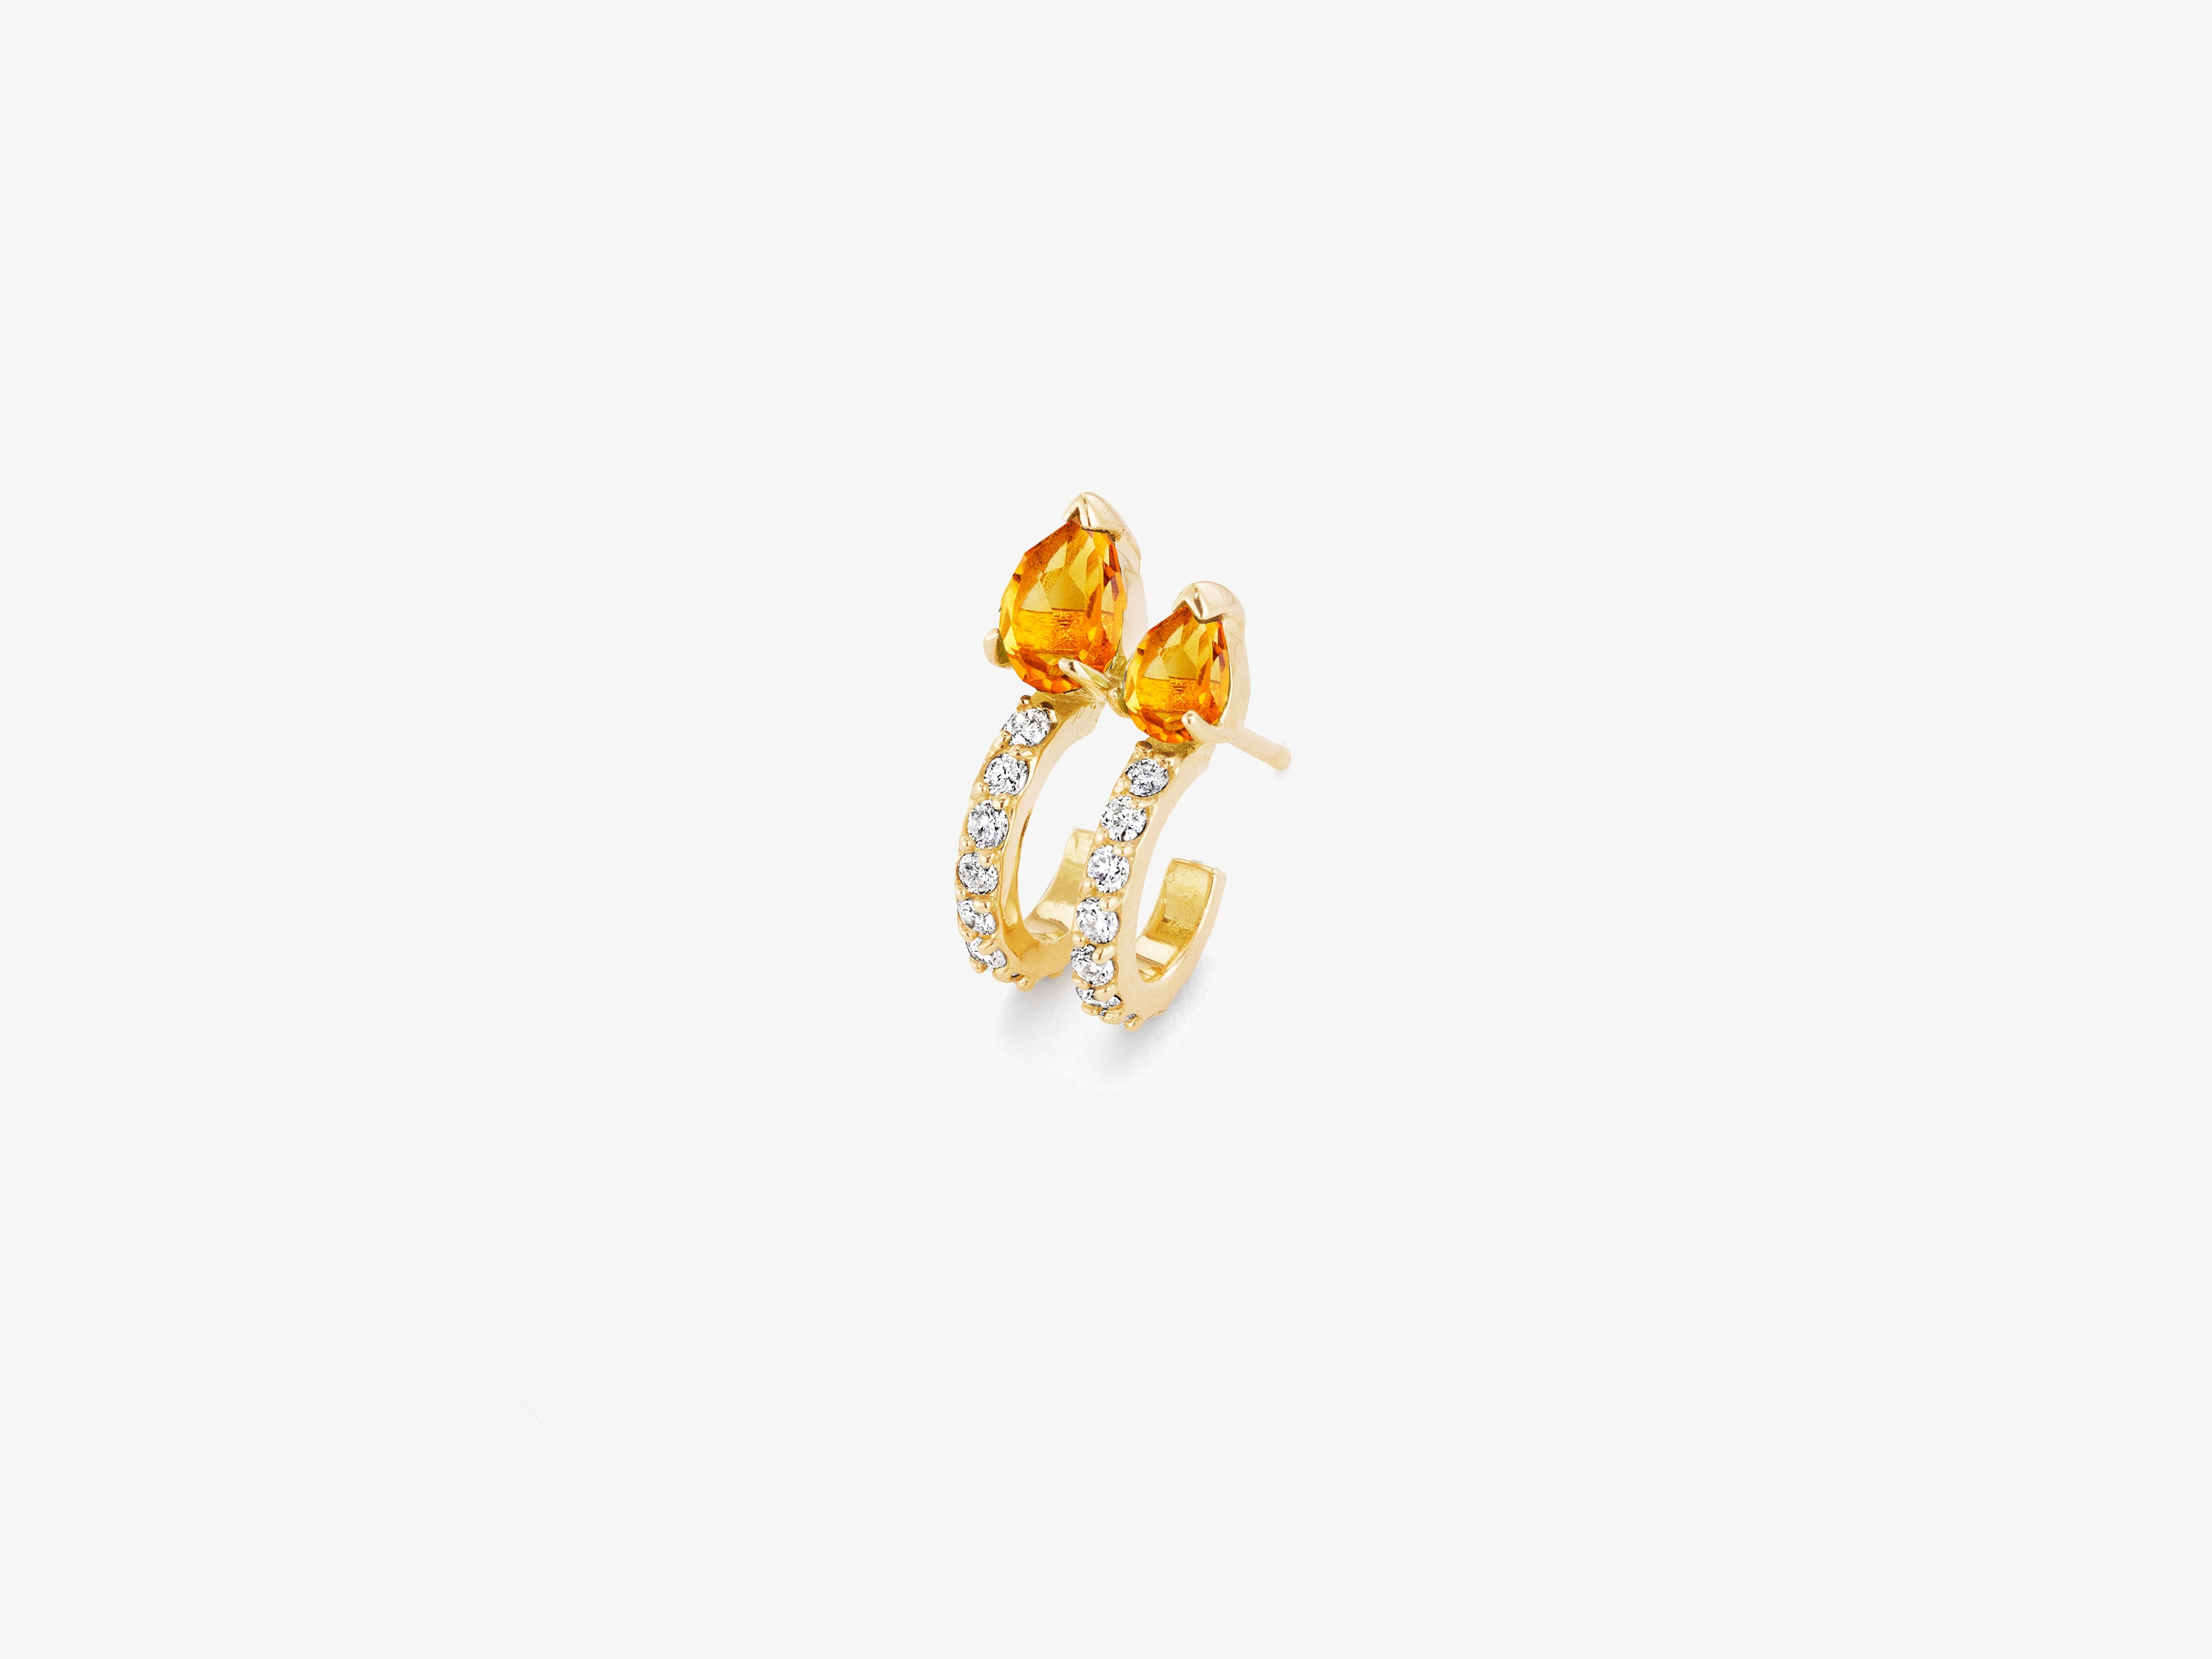 Diamond Pave Huggie Stud with Double Pear Shaped Gemstone Details